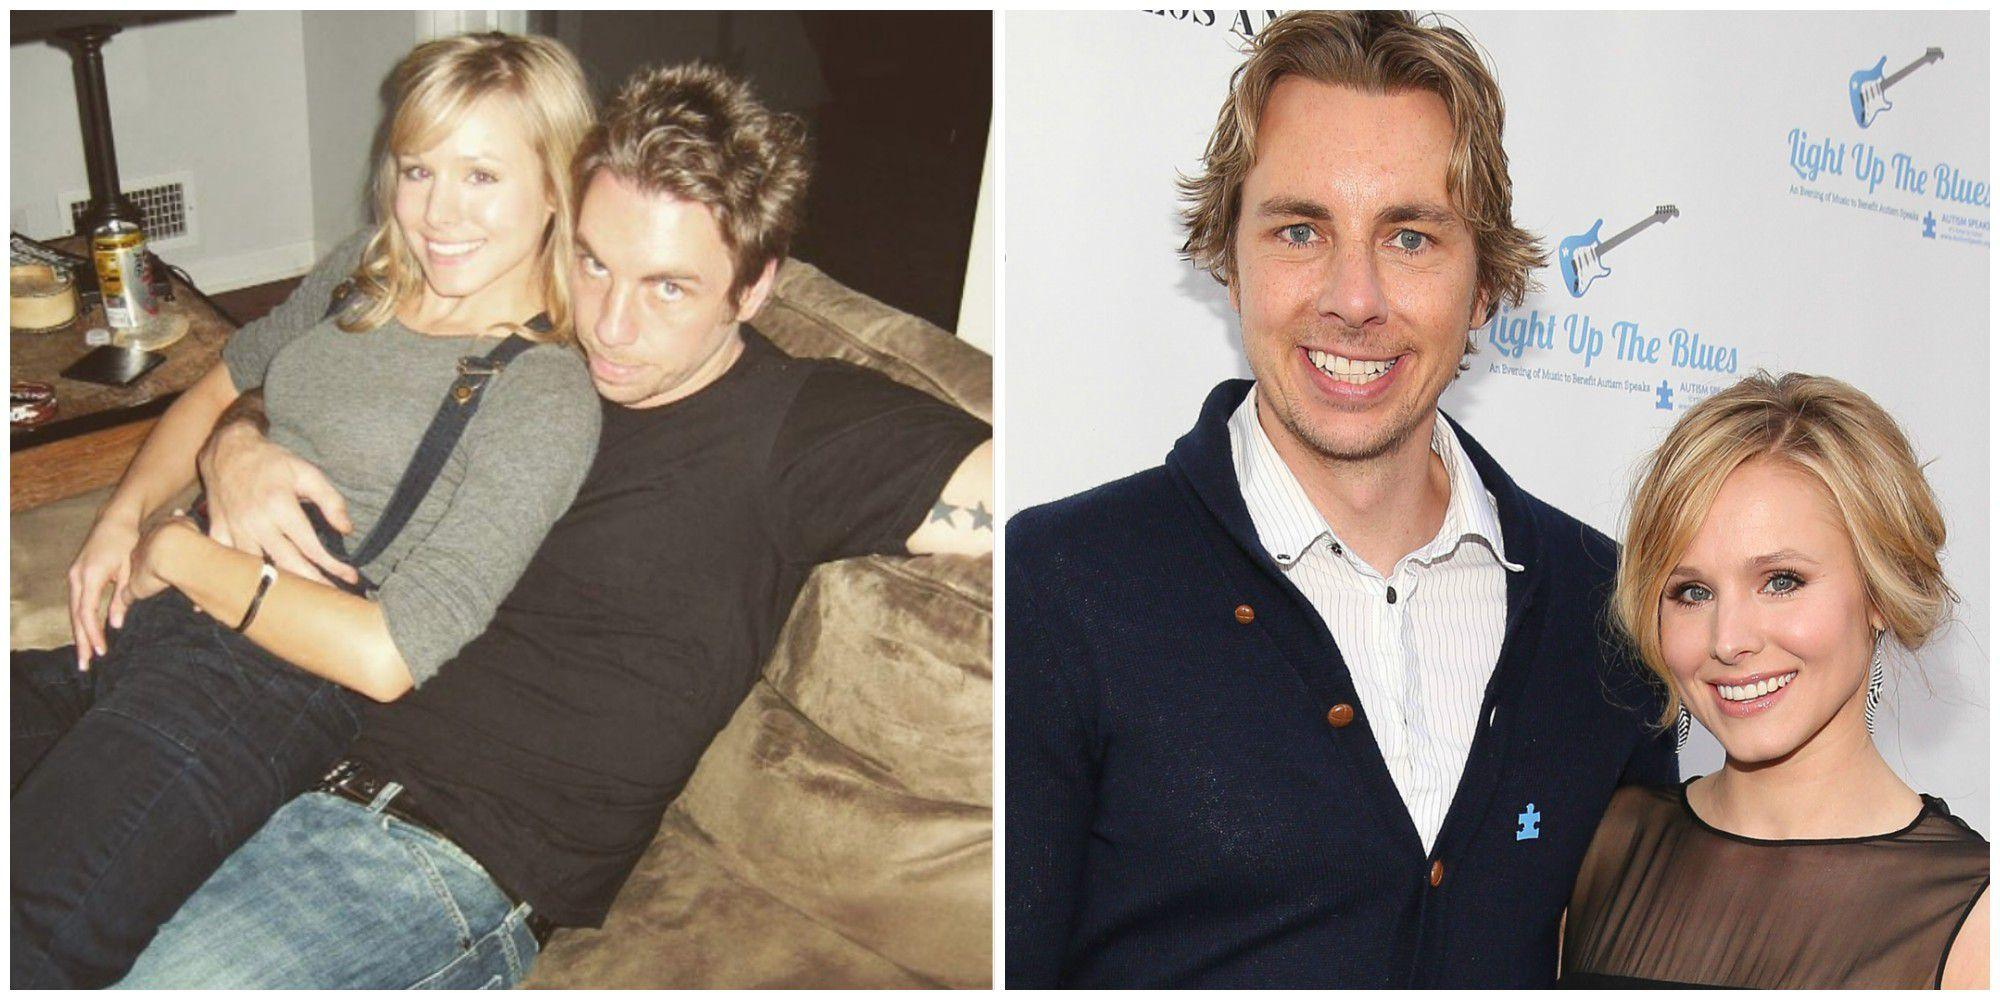 Dax Shepard Says He 'Wasn't Certain' About Being With Kristen Bell - Here's Why!